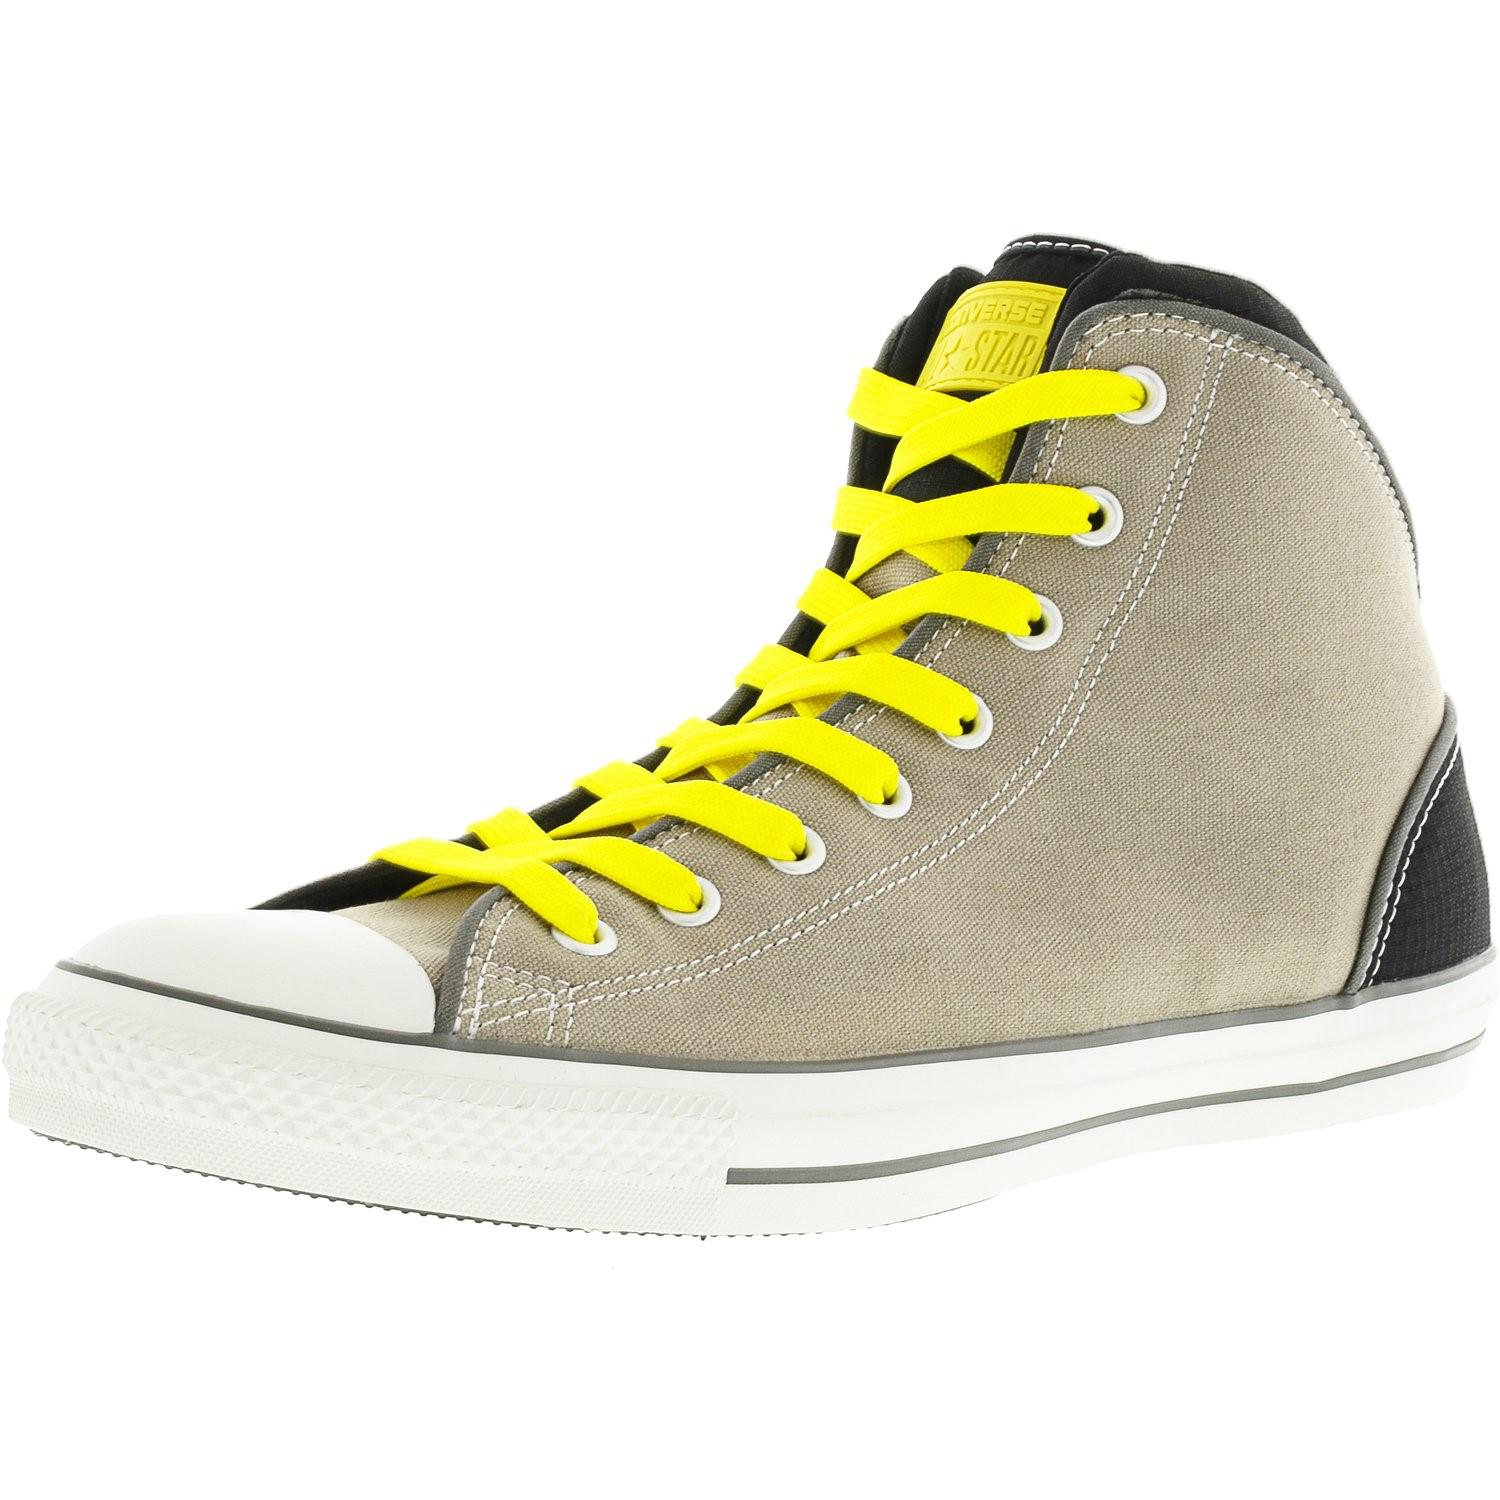 122e6db713c7 Lyst - Converse Chuck Taylor Static Hi Old Silver   Black High-top ...